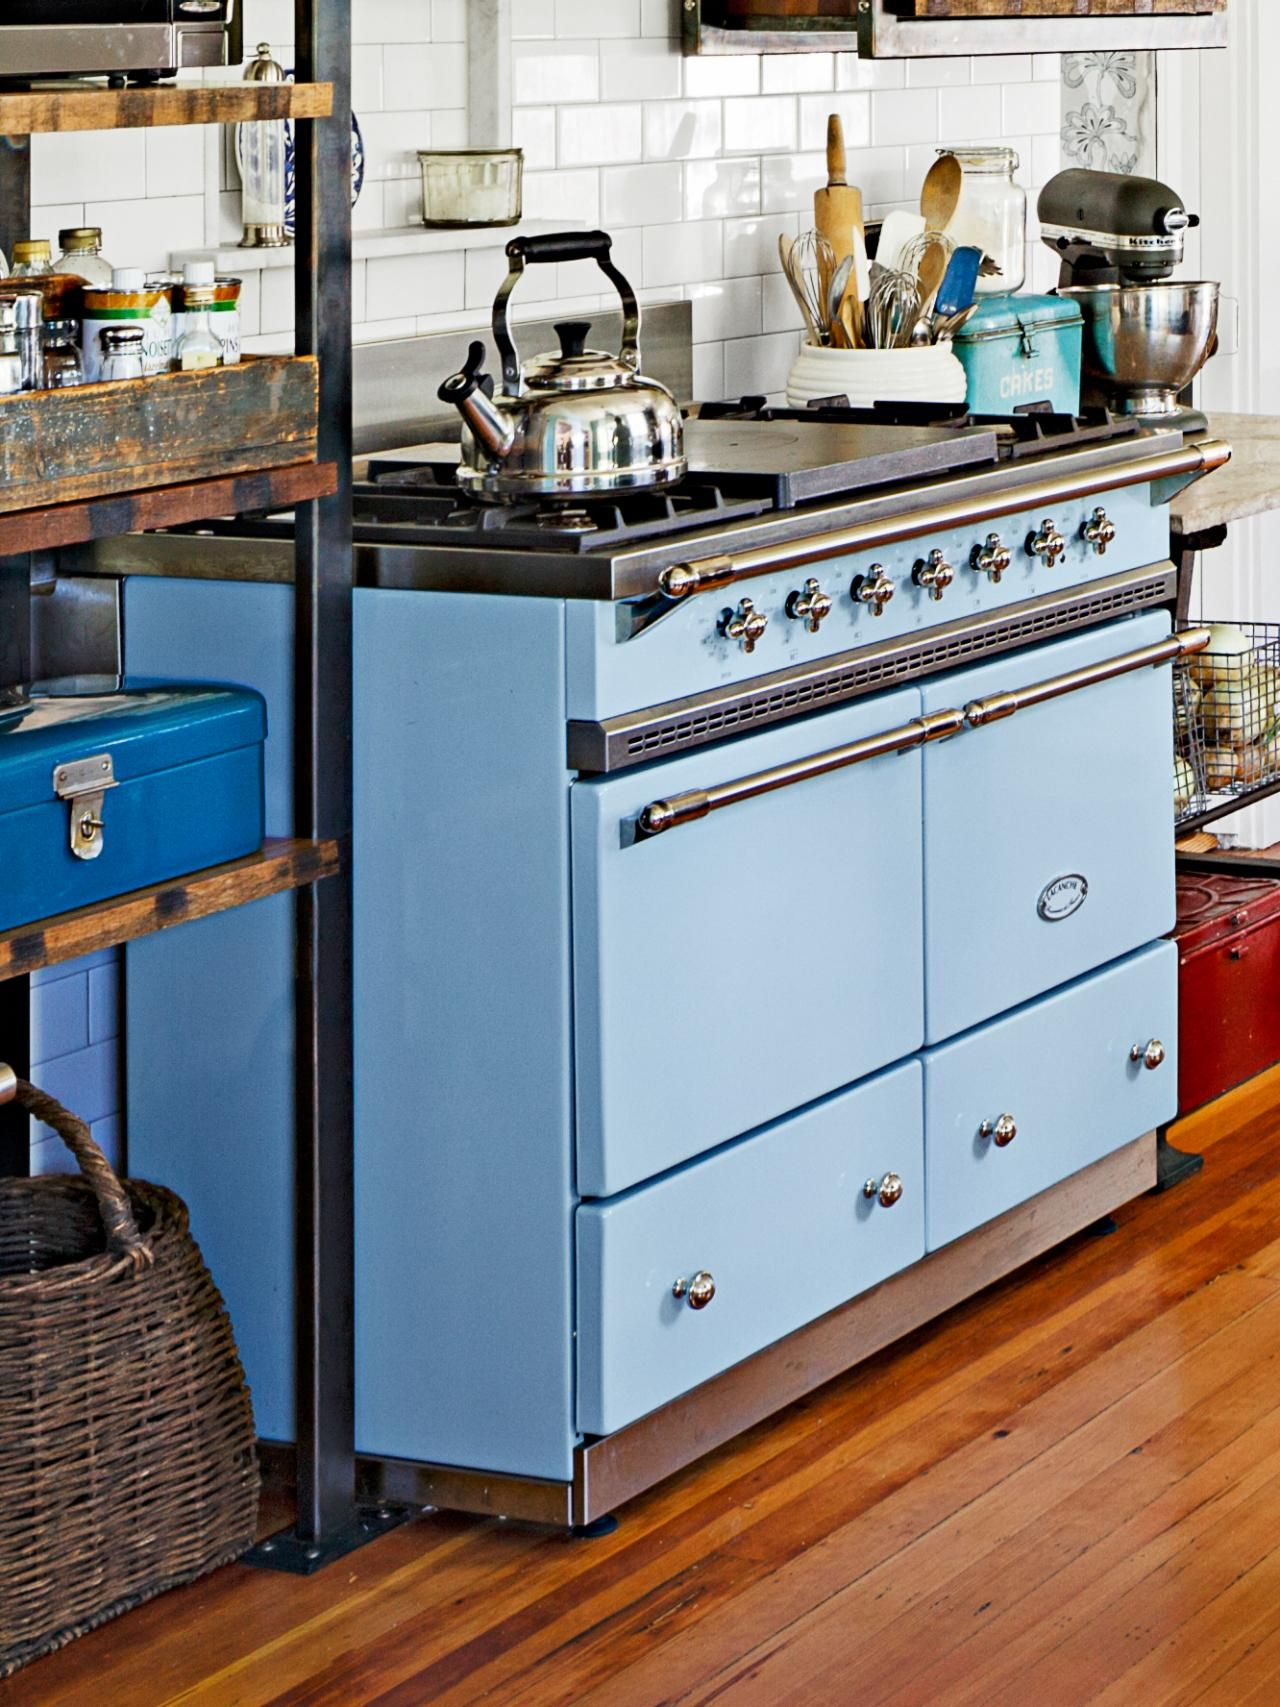 quirky kitchen design ideas to steal from hgtv magazine stove kitchen design kitchen stove on kitchen ideas quirky id=93726